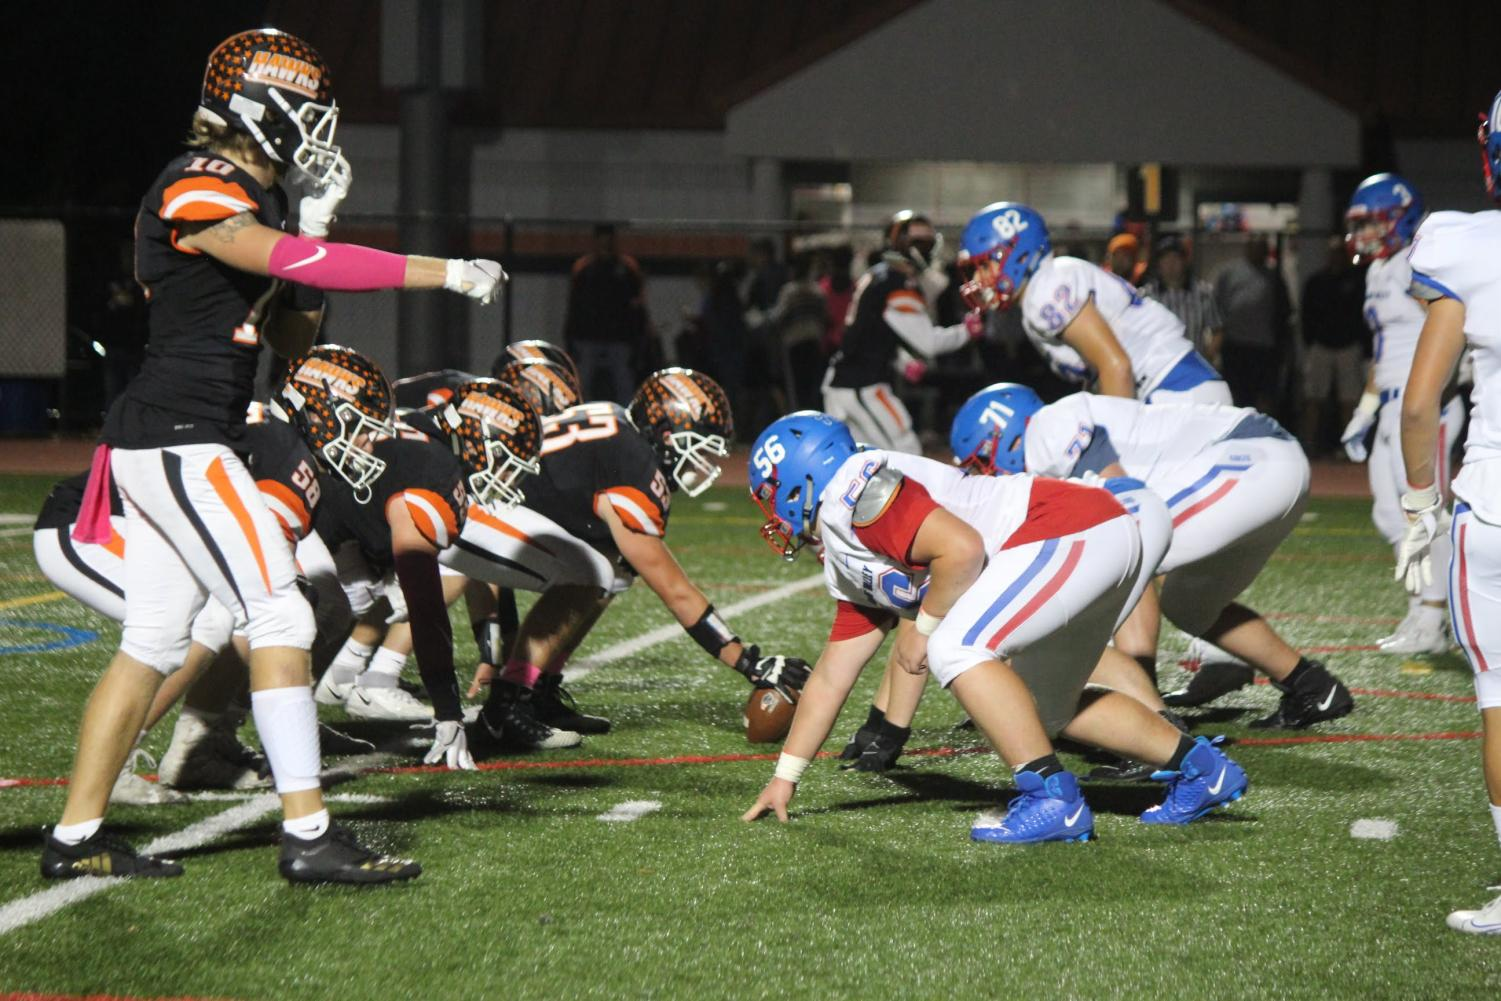 The offensive line faces Char Valley in their game on Oct. 4.